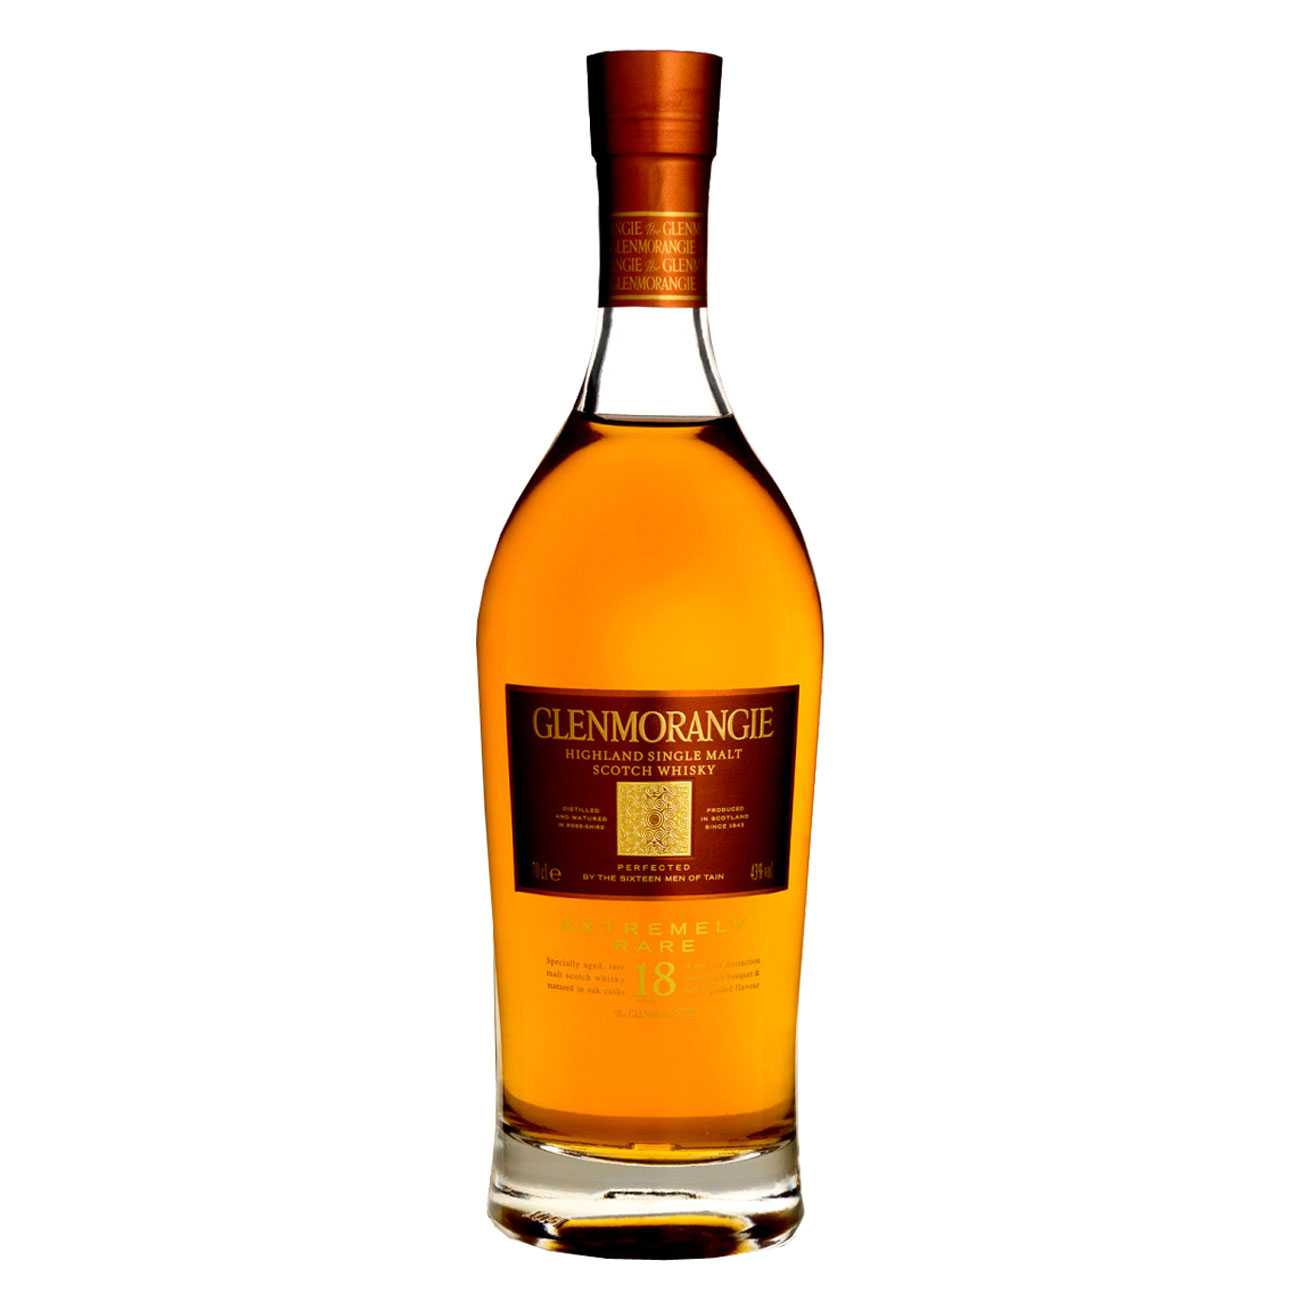 Whisky scotian, 18 YEAR OLD 700 ML, Glenmorangie